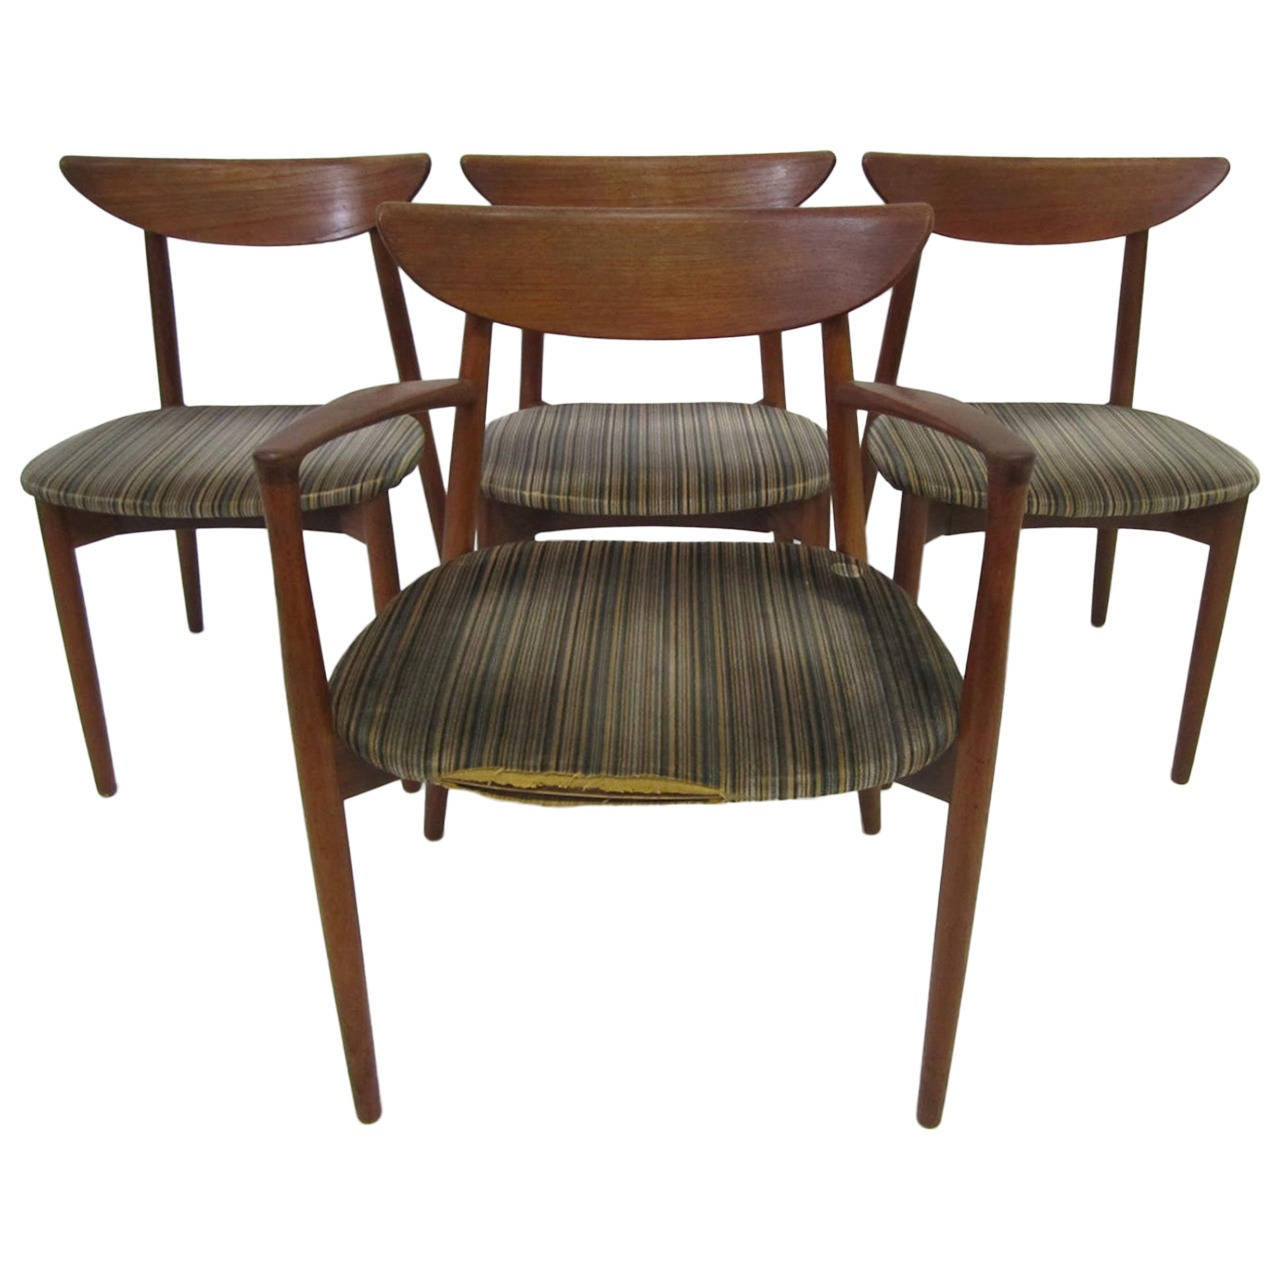 Set of four harry ostergaard teak danish modern dining chairs mid 20th century at 1stdibs - Scandinavian teak dining room furniture design ...